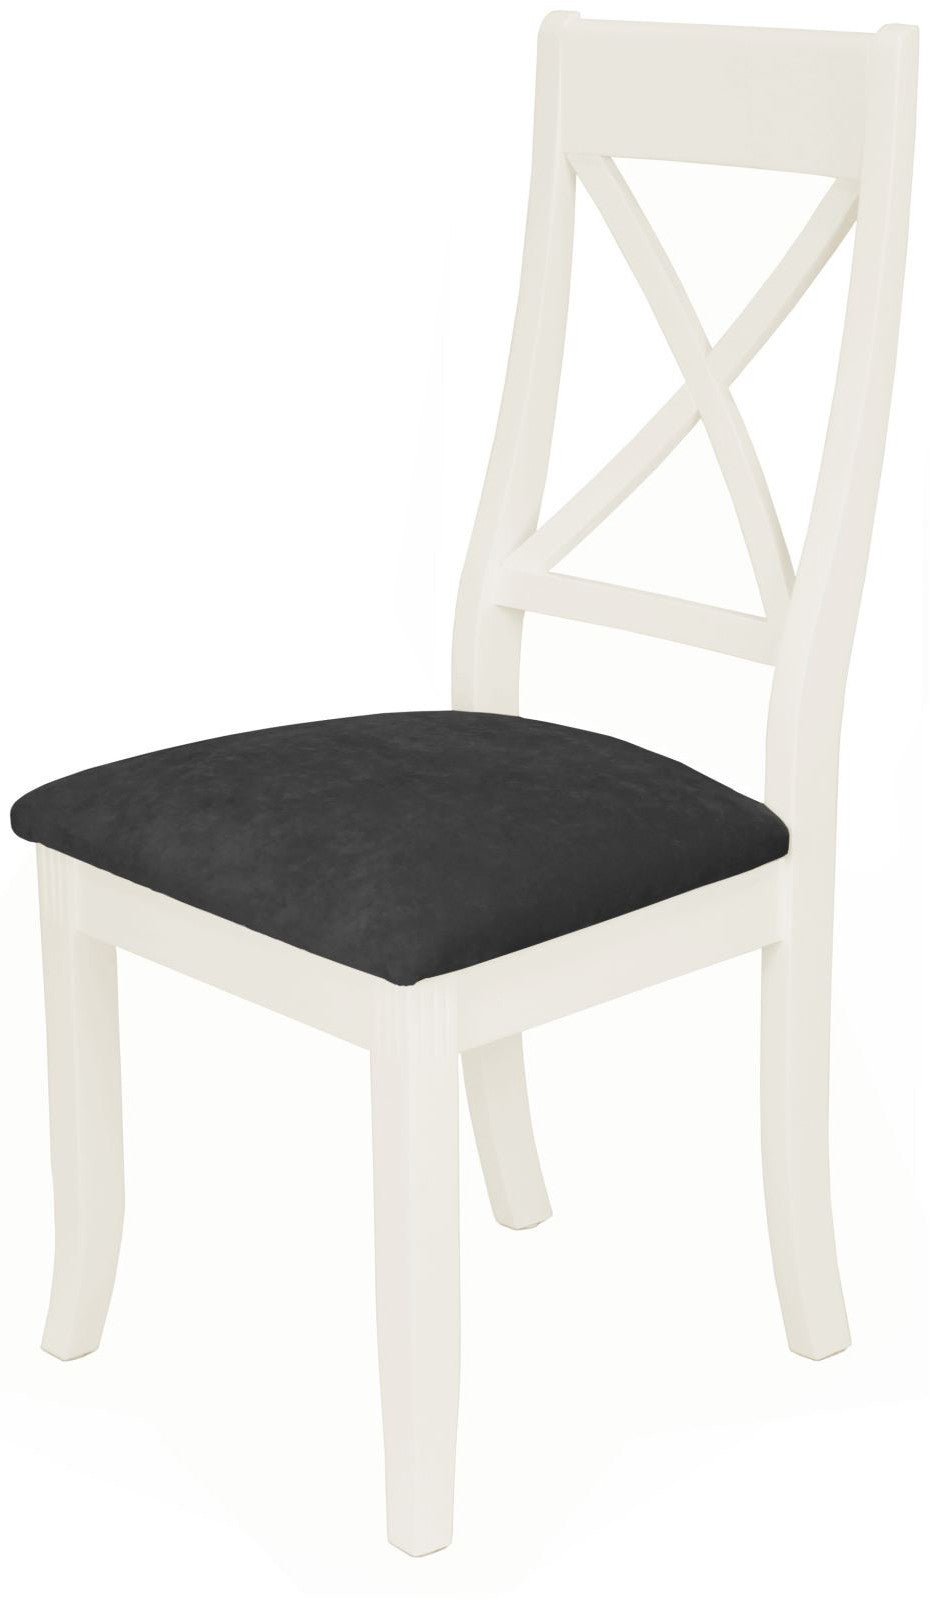 Cottage Cross Back Chair White